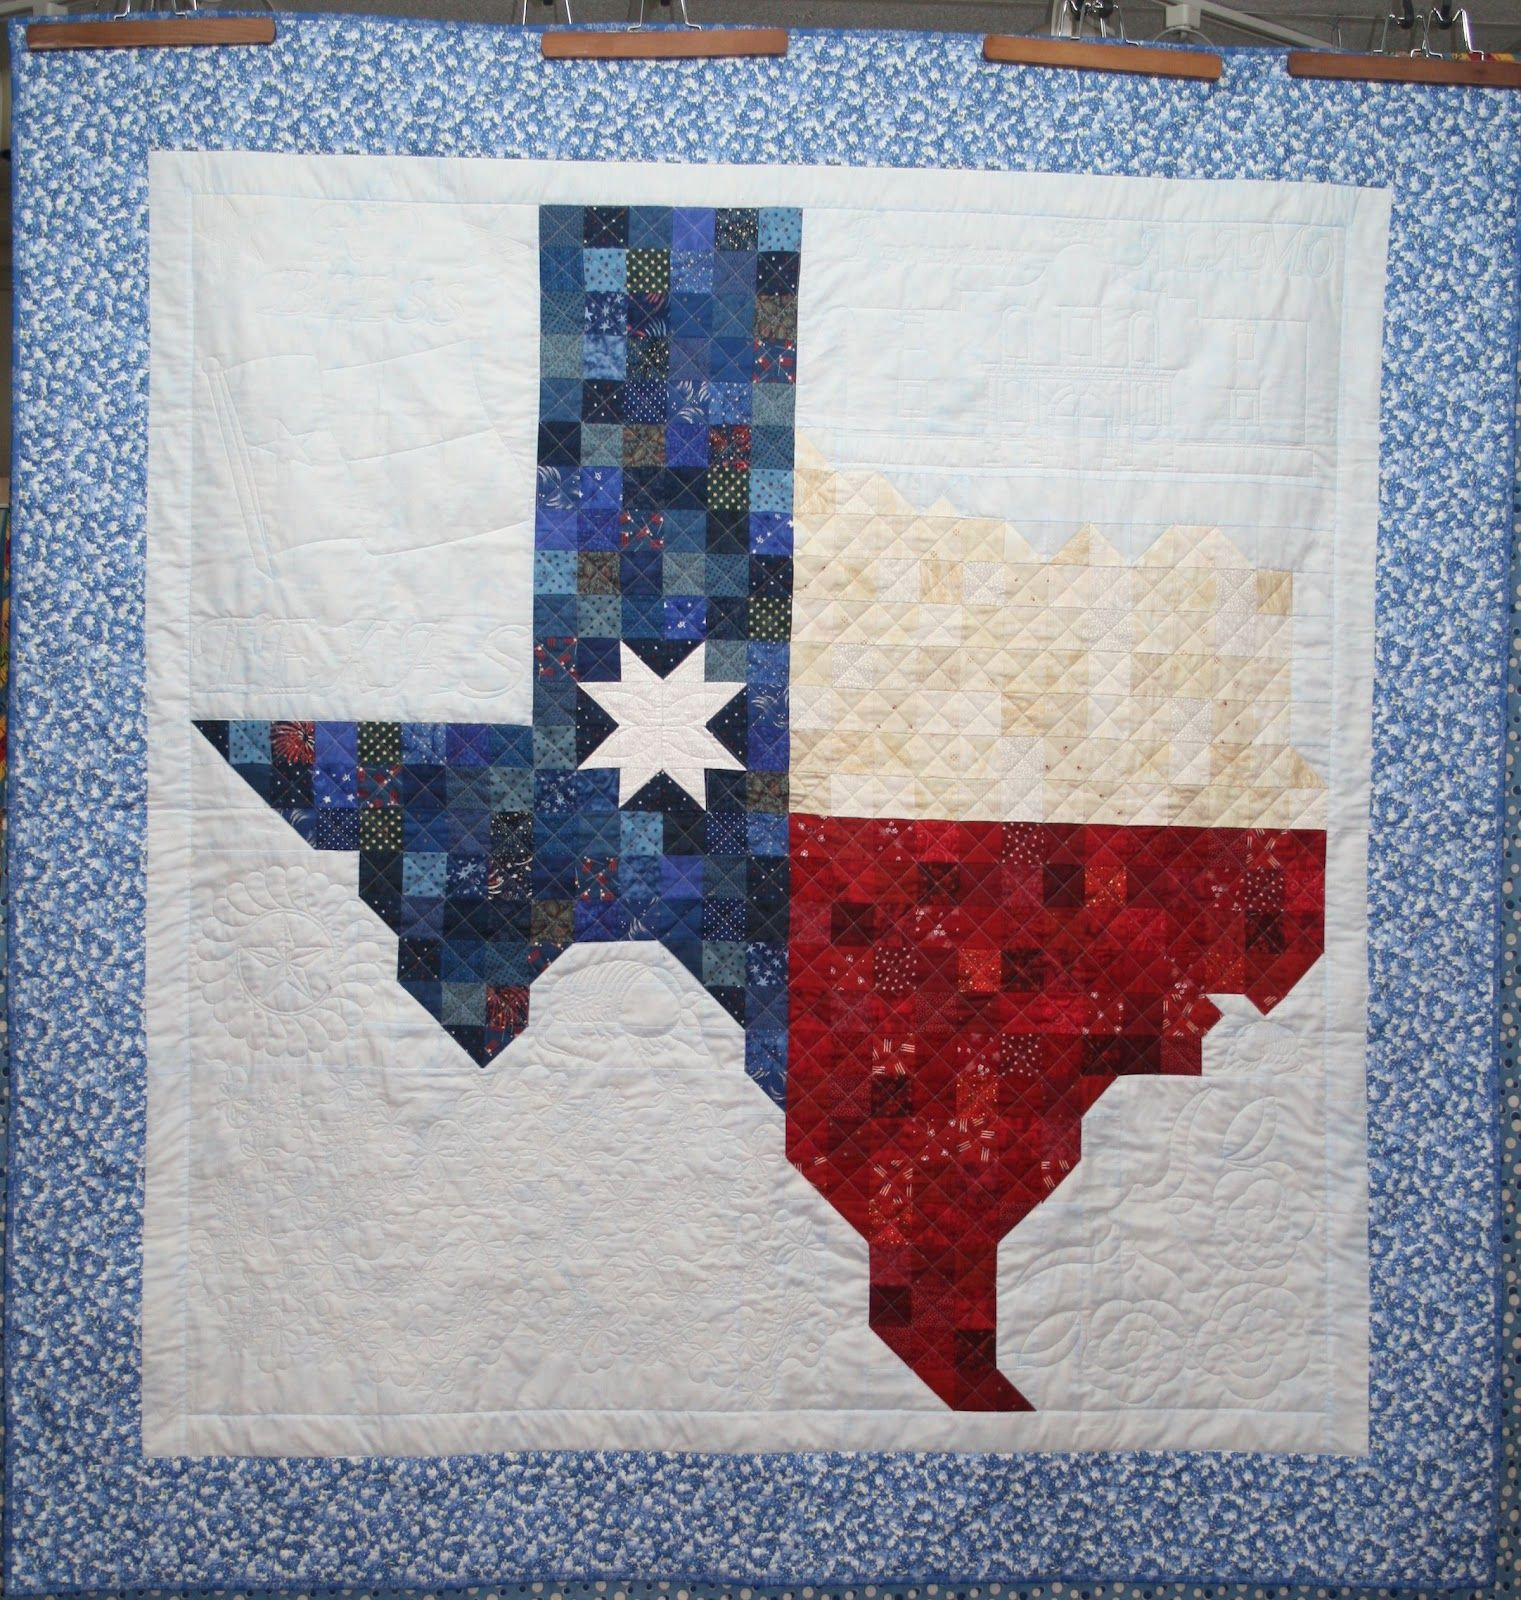 texas star quilt pattern free | The Quilting Queen Online Blog ... : texas star quilt pattern free - Adamdwight.com